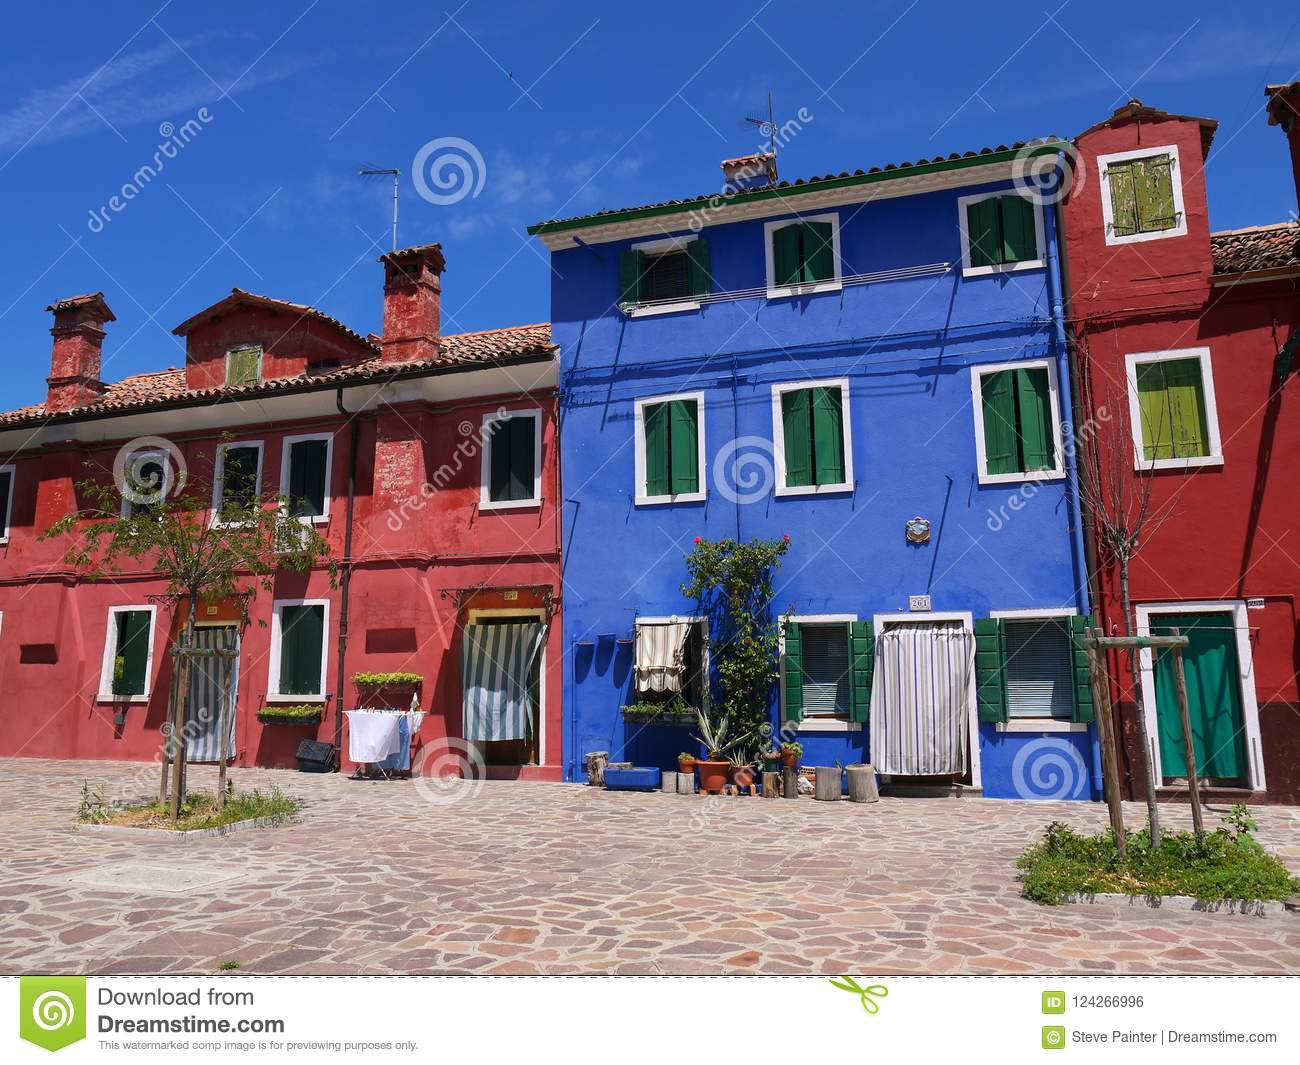 Brilliant House The Houses Painted In Brilliant Pastel Shades At Burano Italy